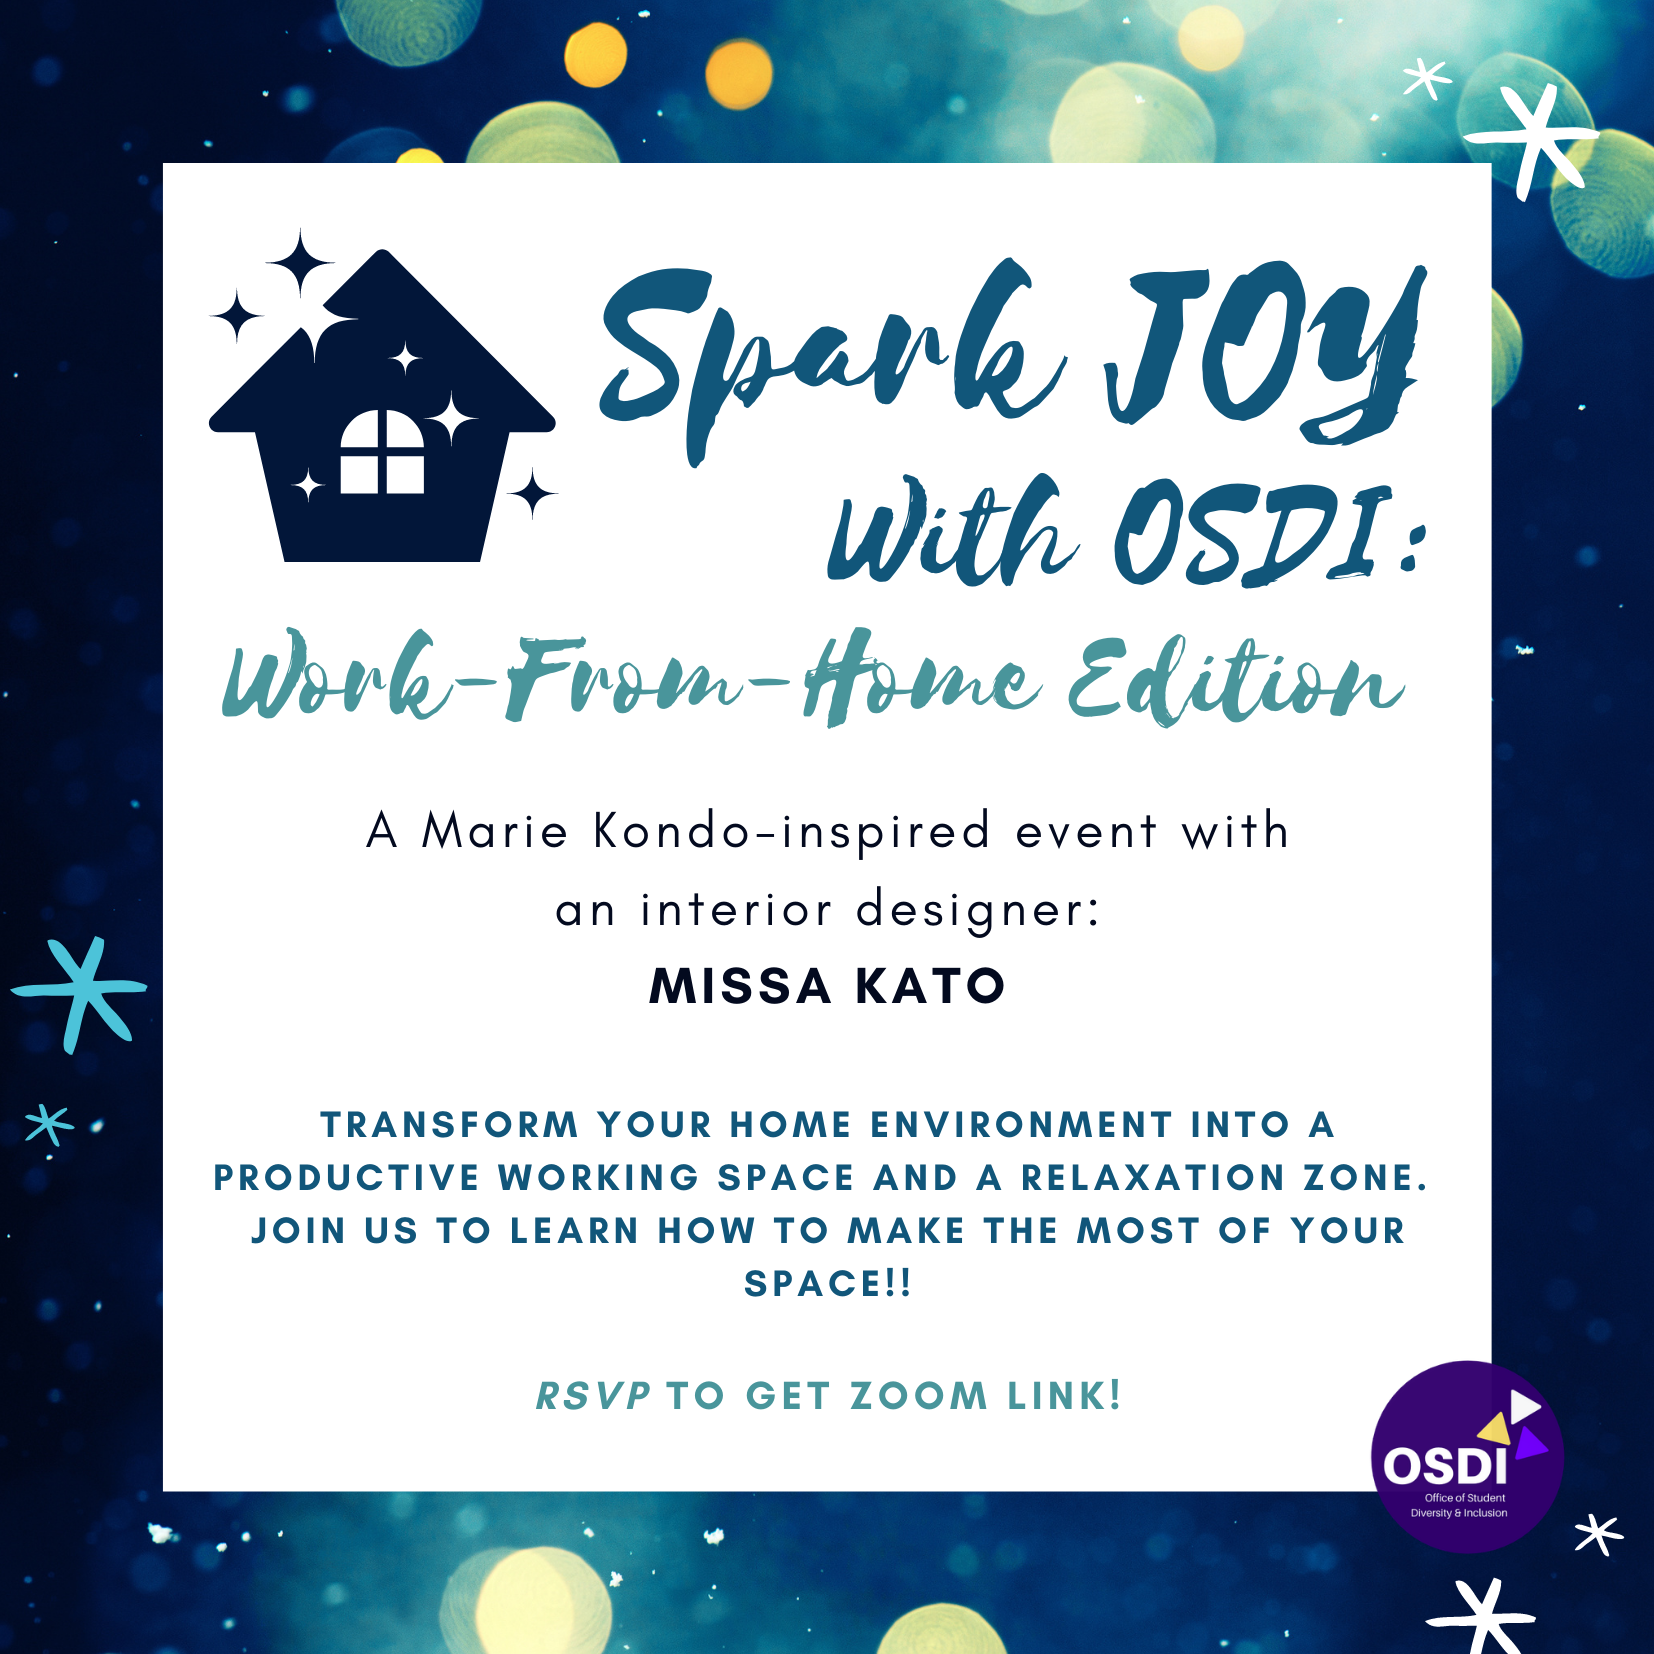 O S D I presents Spark Joy With OSDI. An event to help you create a productive work from home space. The event will occur on Thursday, March 4 at 7pm. Register at https://forms.gle/4sw9azW91Lu4mosp8